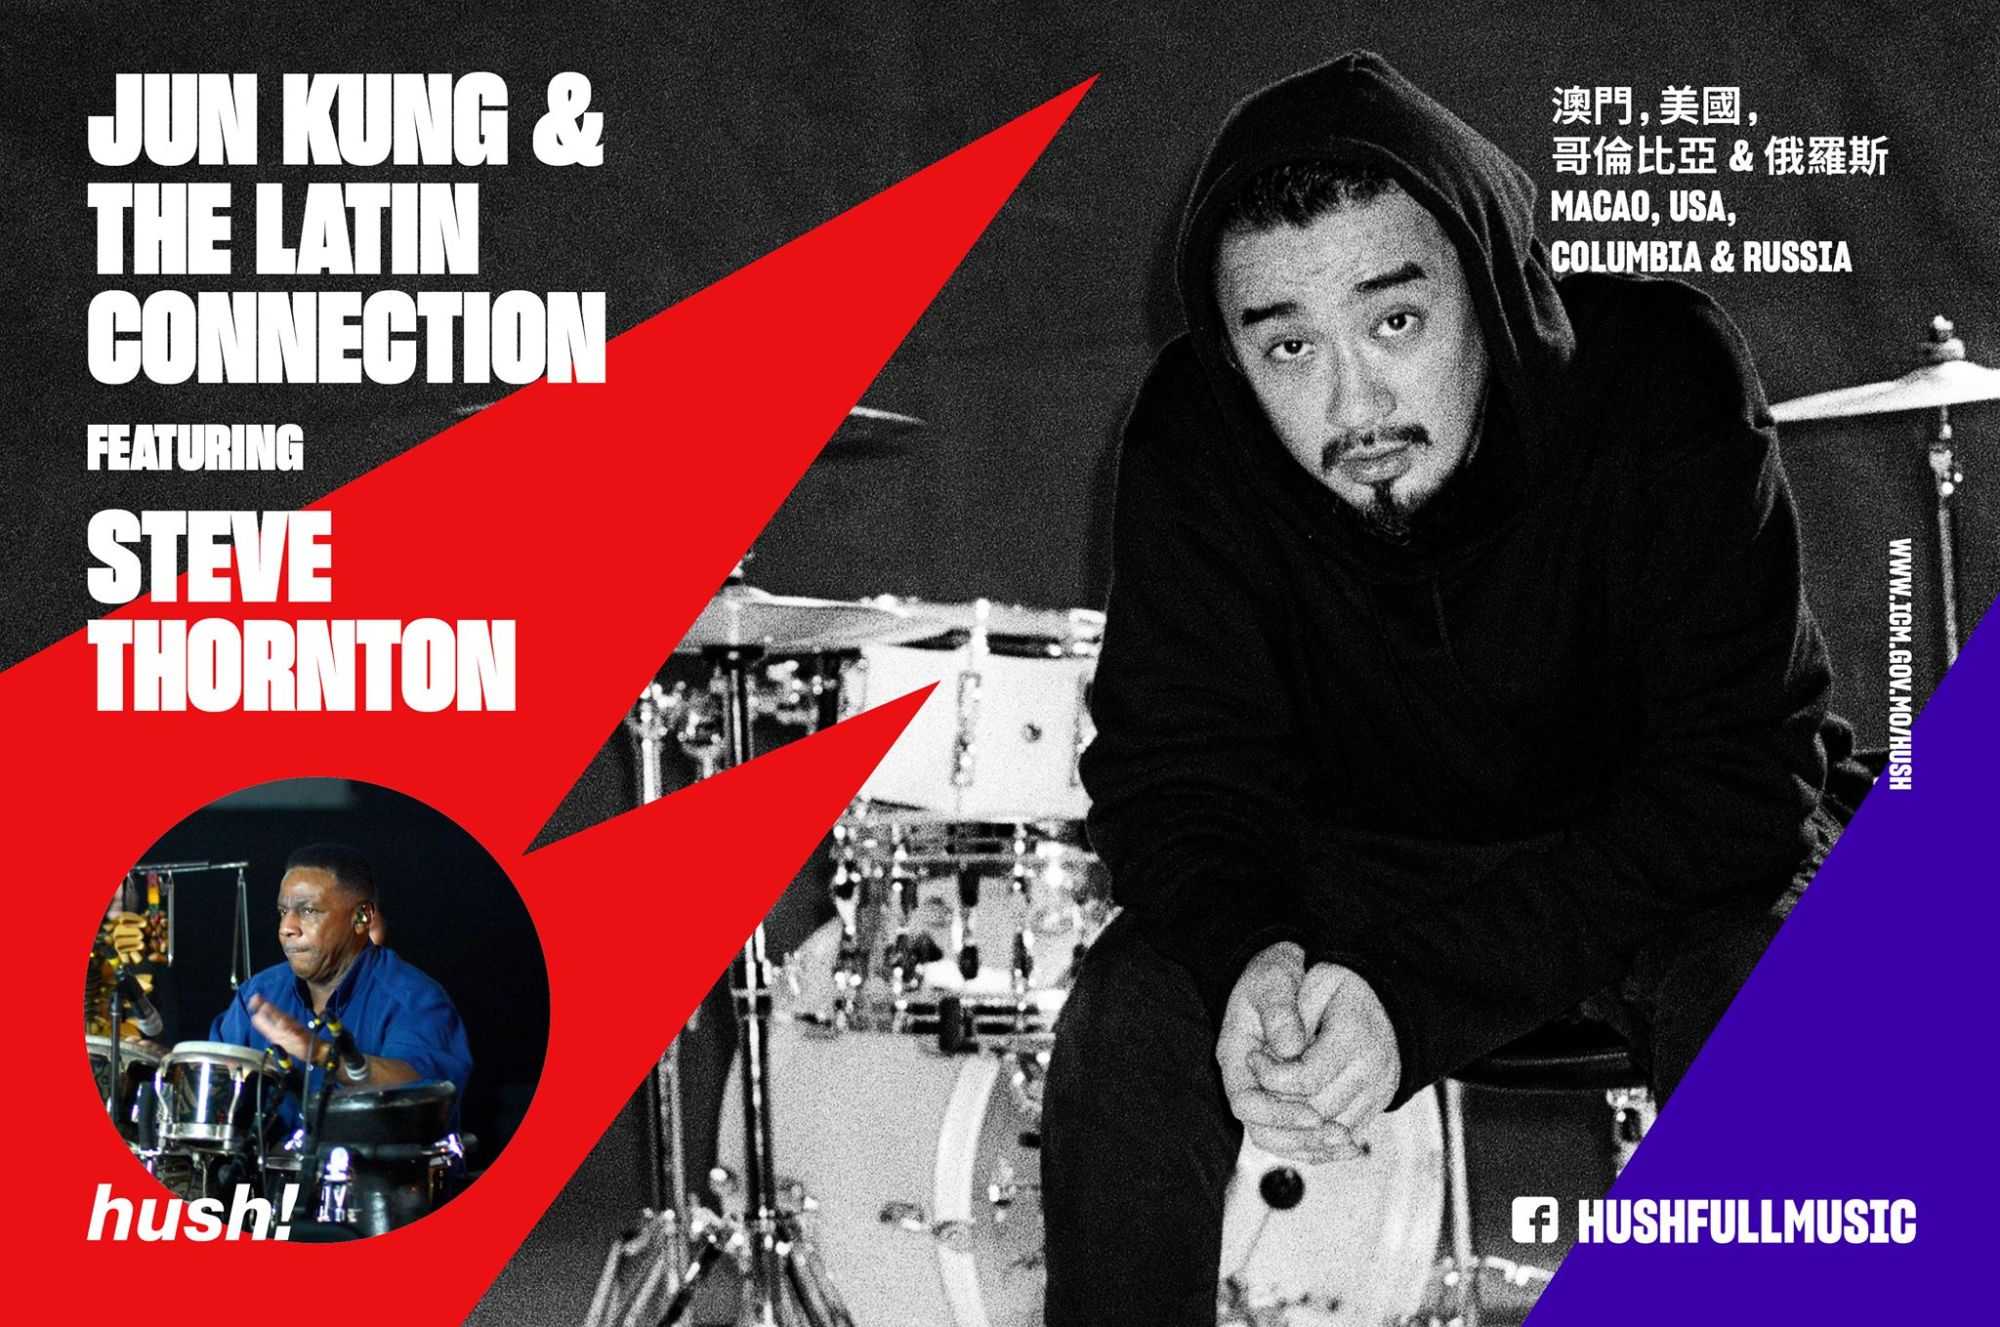 HUSH!! Full Music 2019 jun kung & the latin connection thornton